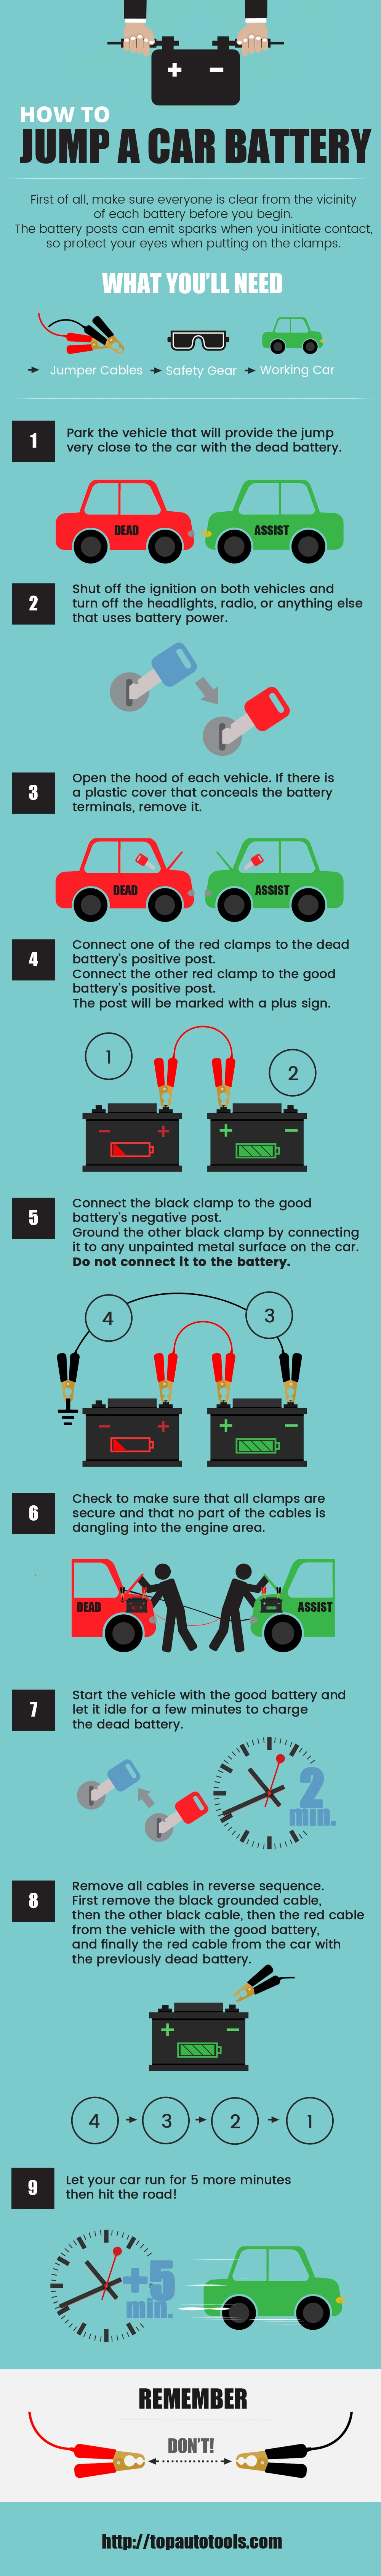 How To Jump Start a Car Battery